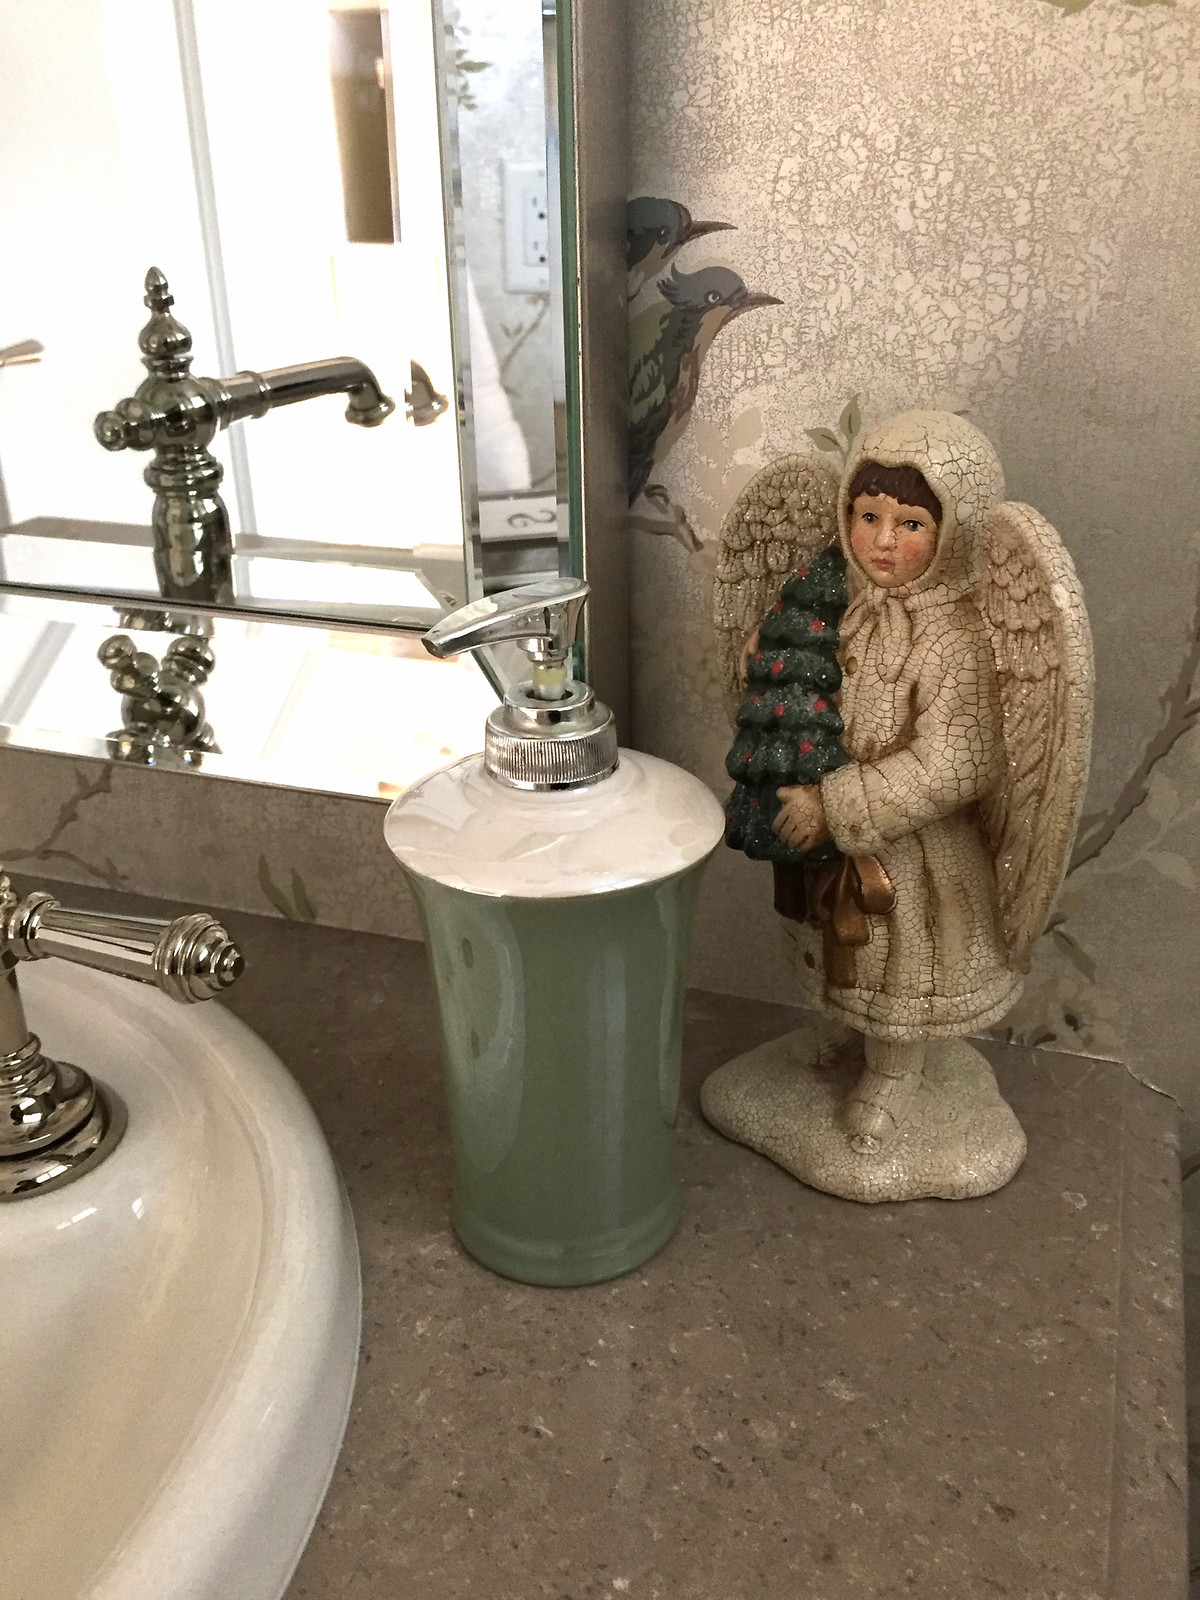 angel placed in elegant powder room for Christmas decor